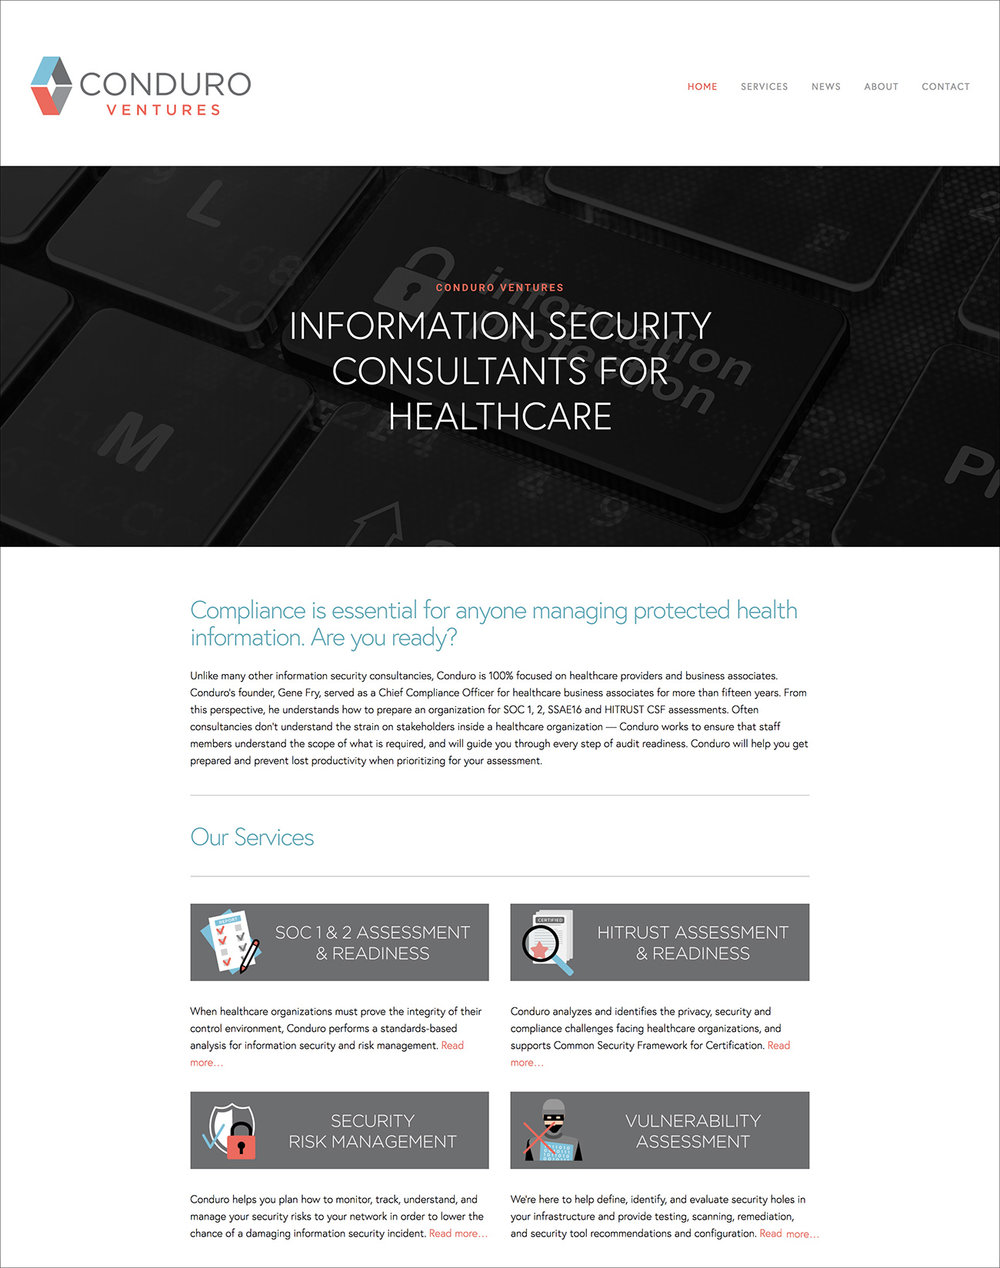 Conduro Ventures Website | Information Security Consultants for Healthcare, Soc1 and 2, HiTrust, Risk Management, HIPPA Compliance, Austin, Texas | DesignCode | Austin, Texas